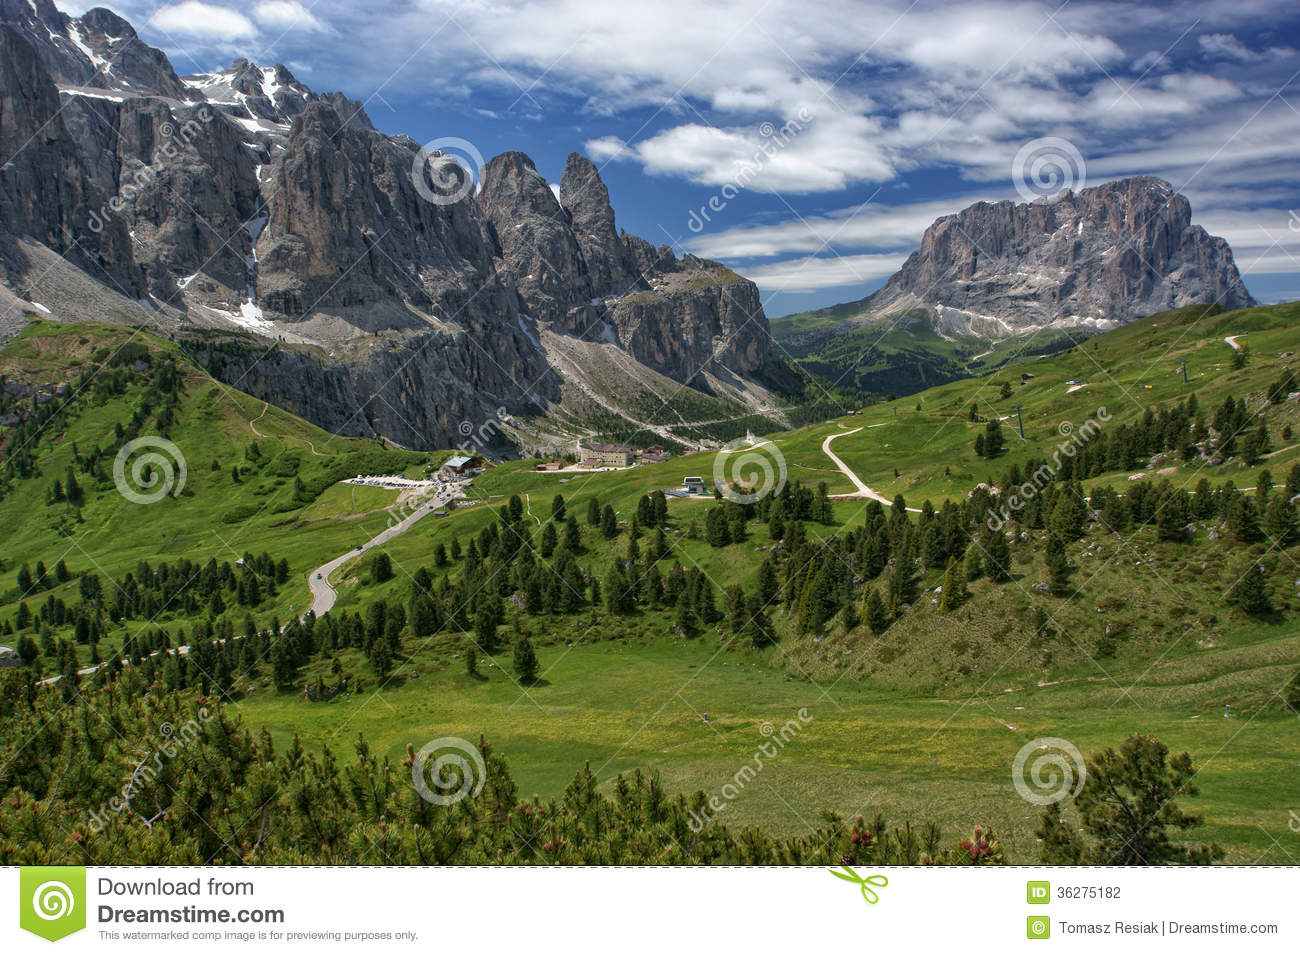 maps of all states with Stock Photography Gardena Pass High Mountain South Tyrol Italy Image36275182 on Gta 6 News All You Need To Know About The Up ing Gta Game likewise Zeeland Tourist Map as well Lizenzfreies Stockfoto Centralia Staat Washington Image35070875 furthermore Maine Location On The Us Map additionally Where Is Nagpur.